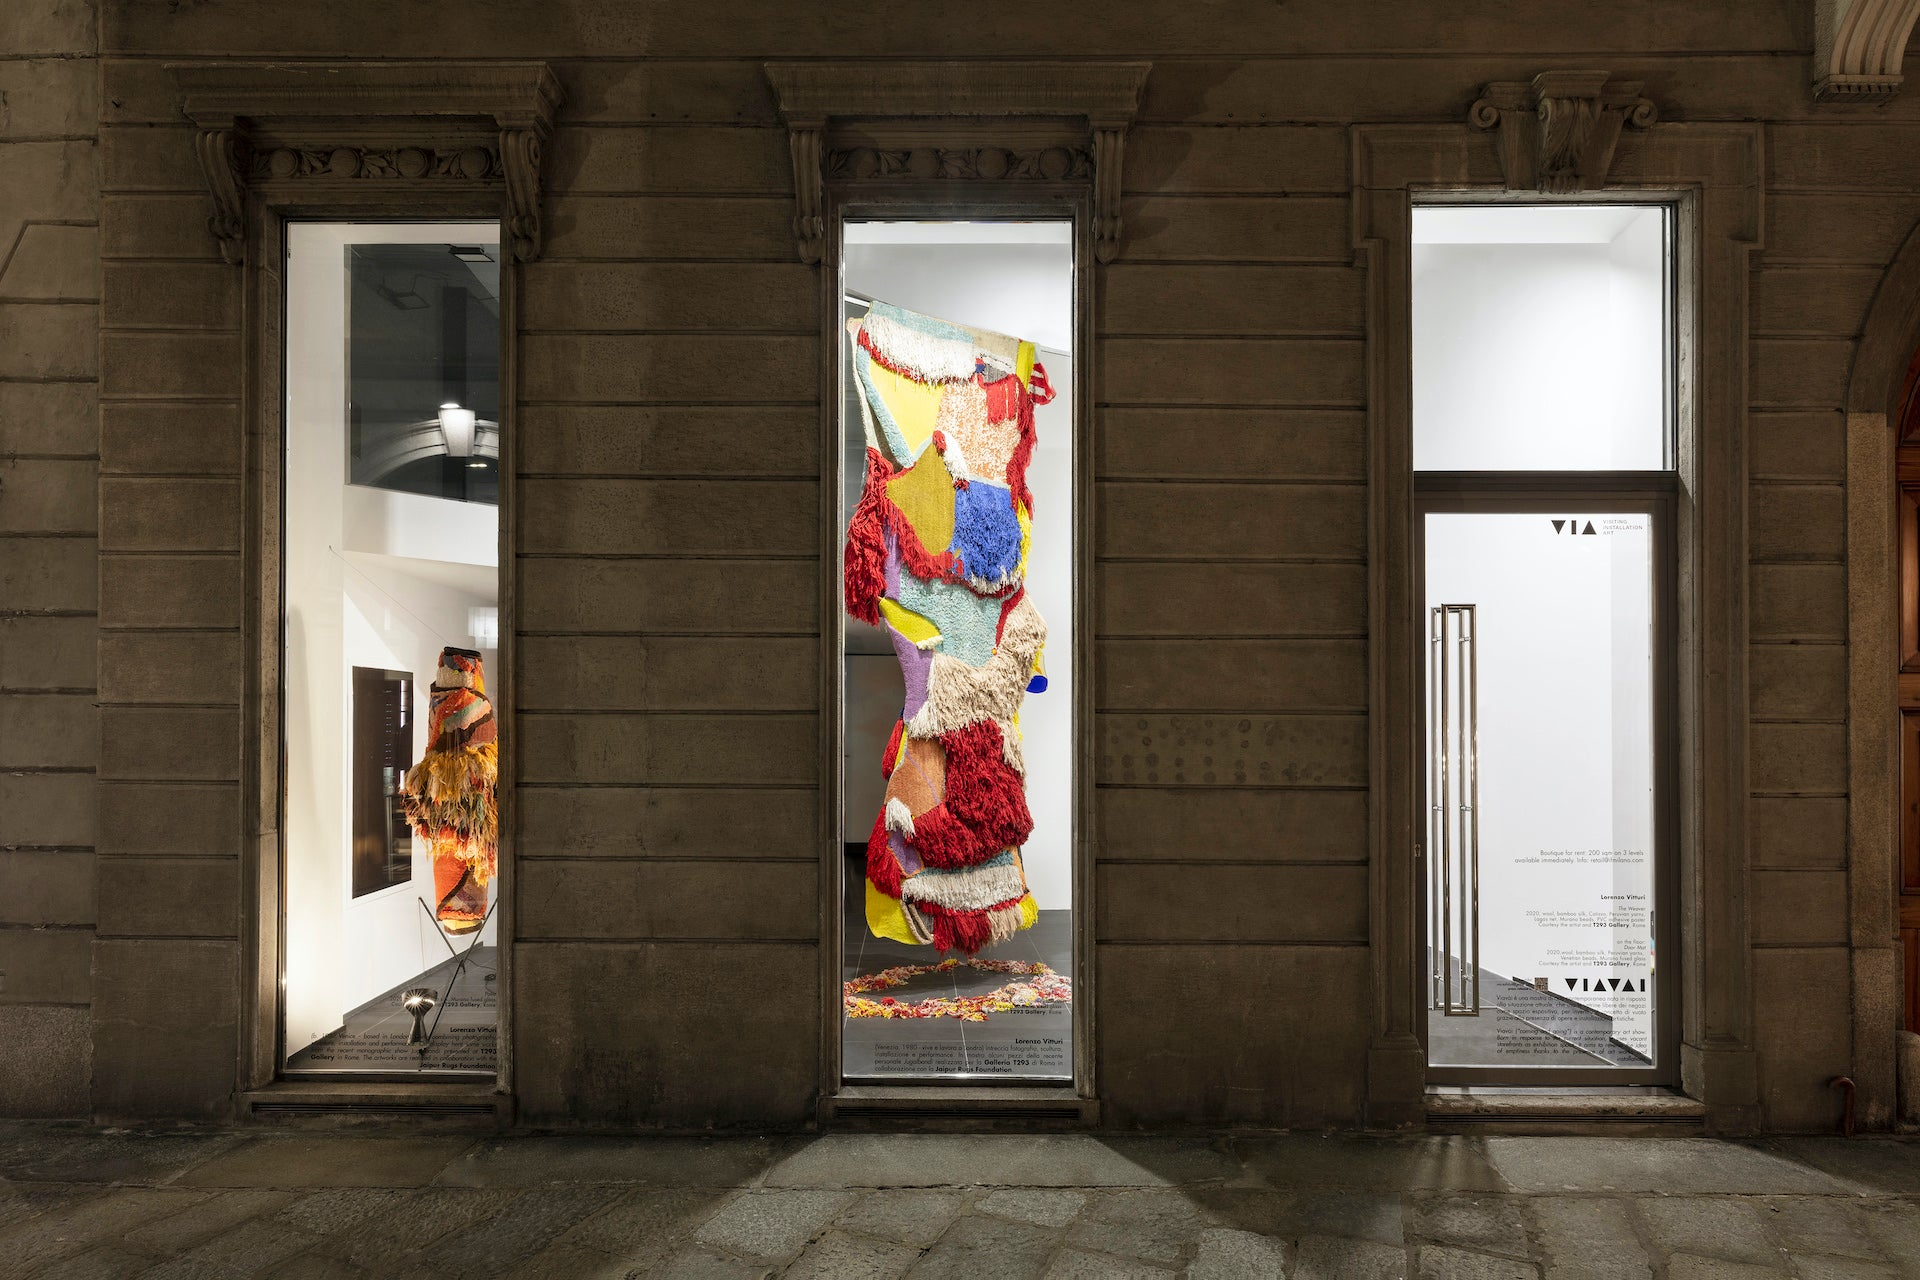 A work by Lorenzo Vitturi hangs in a storefront window as part of the Viavài exhibition on Milan's Via della Spiga, curated by Sala. Photo © Valentina Angeloni